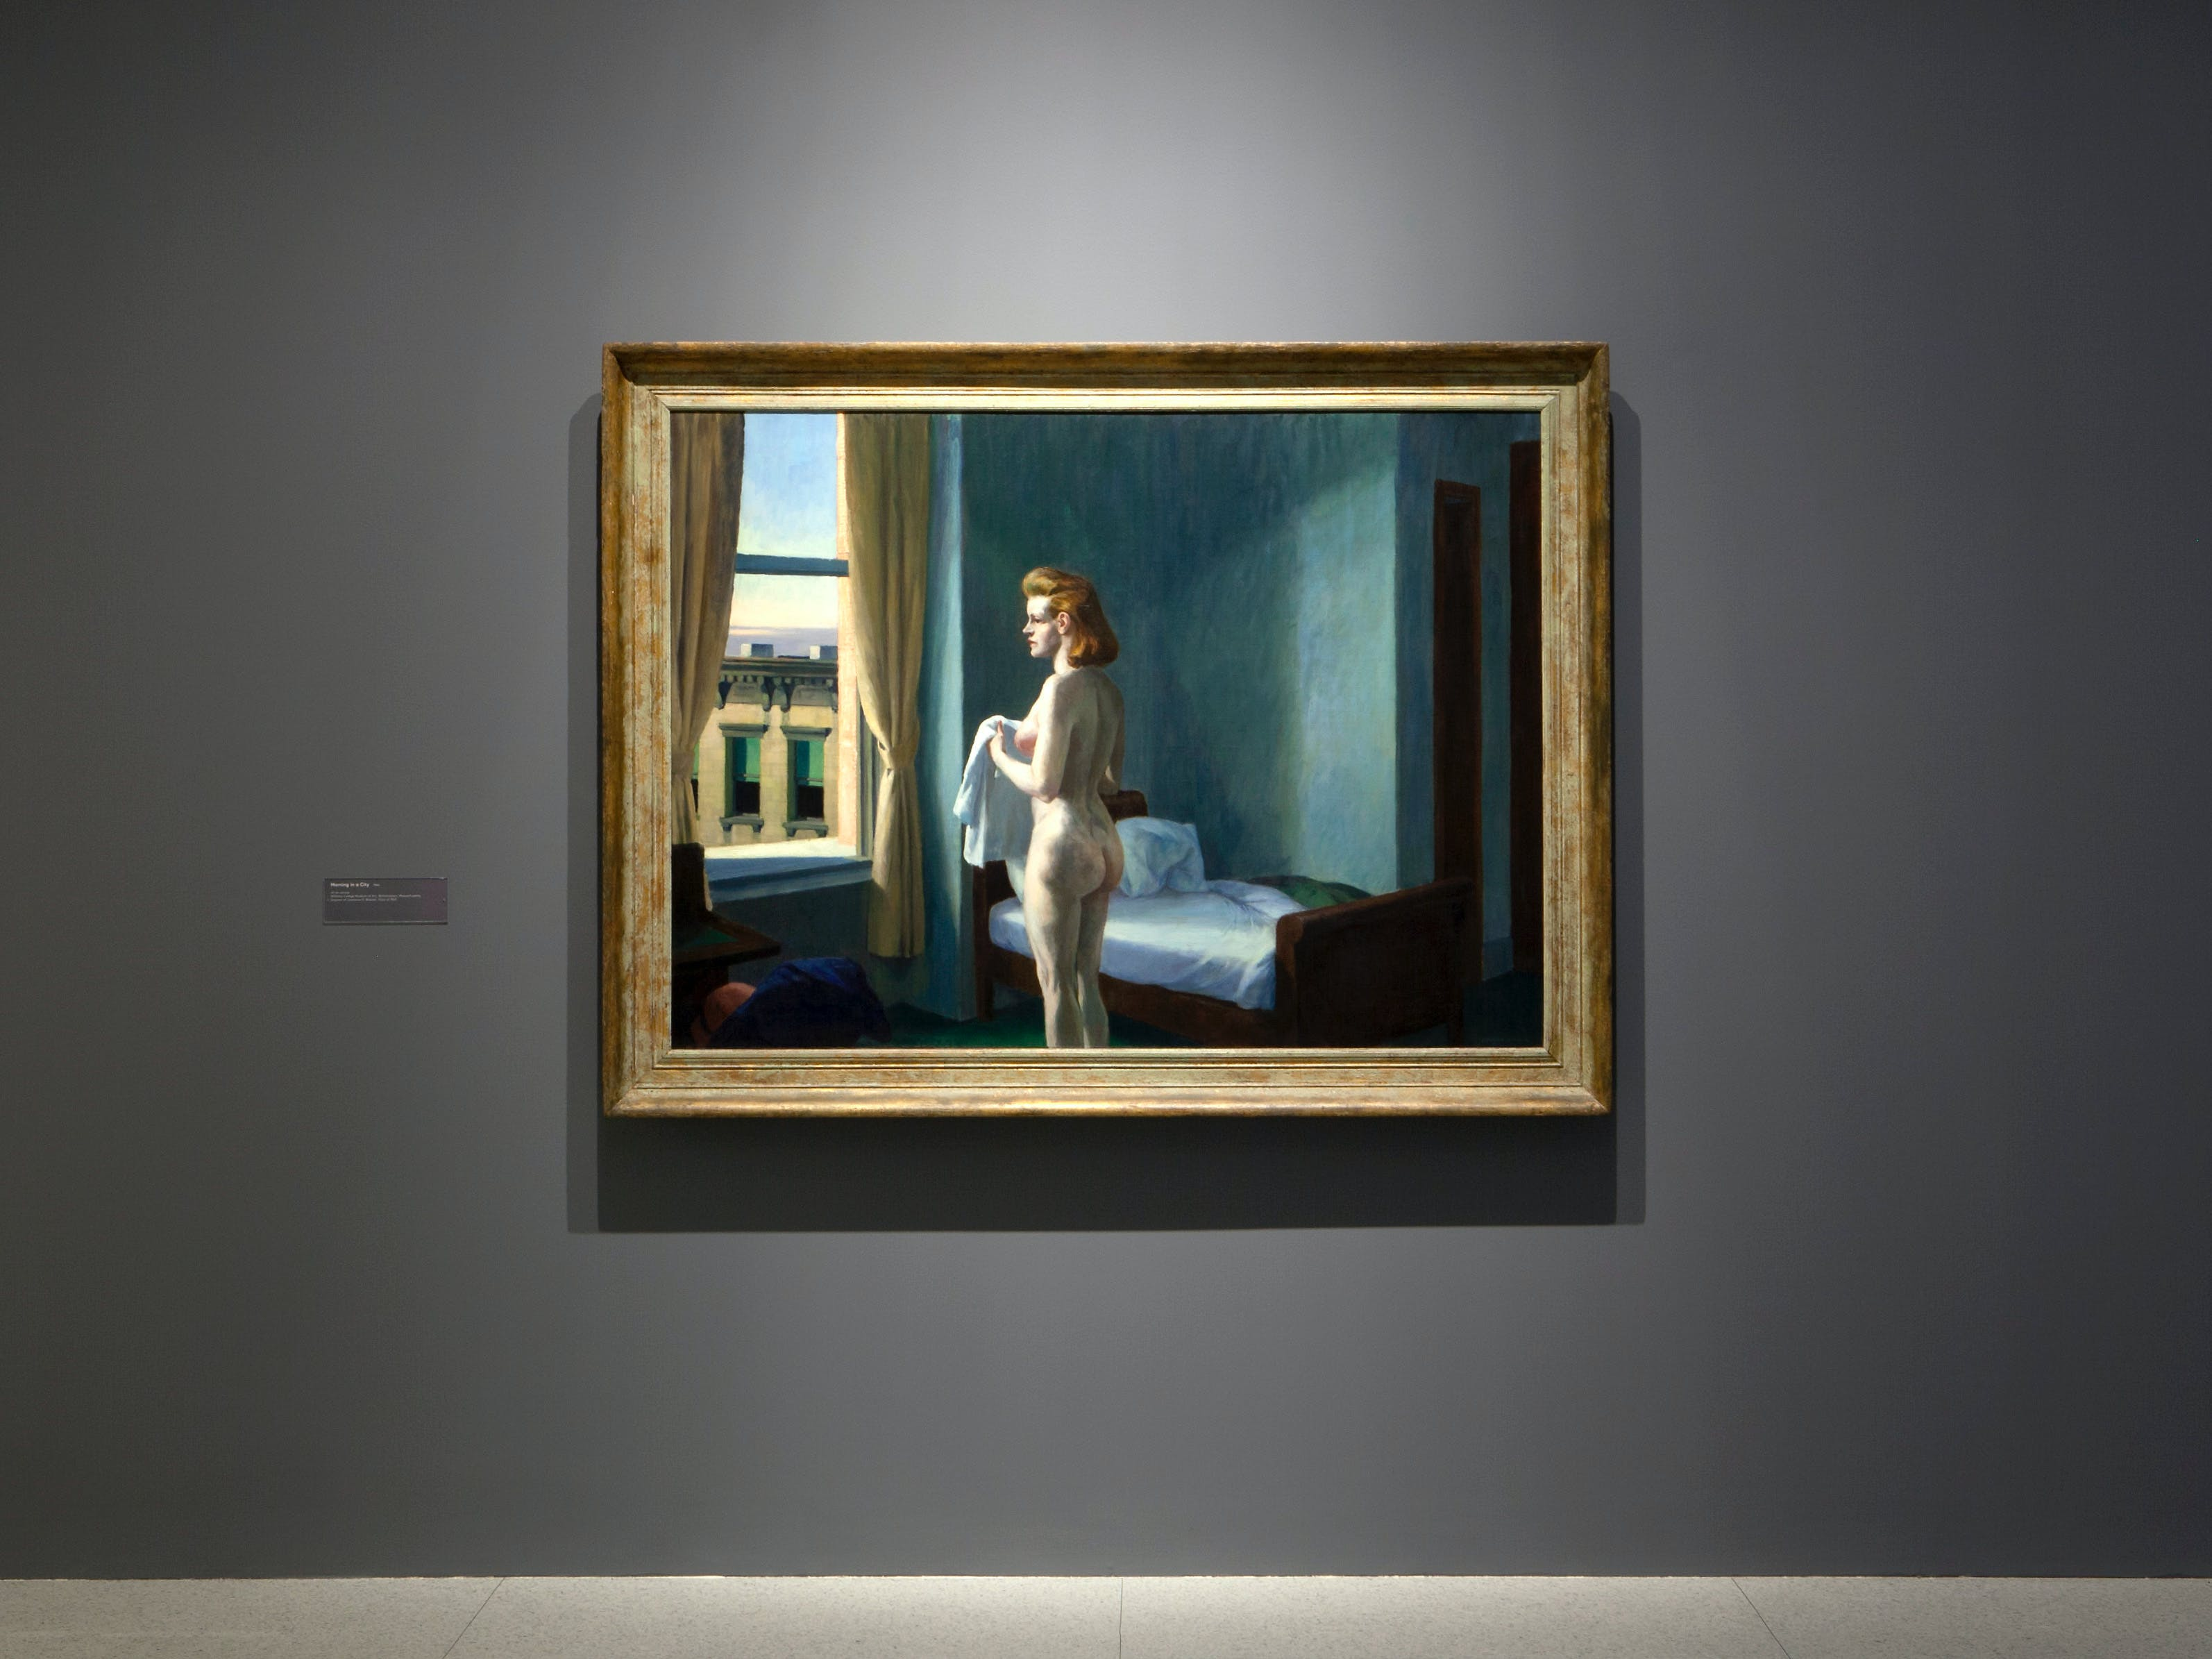 View of the exhibition Hopper Drawing: A Painter's Process, 2014; Edward Hopper, Morning in a City, 1944